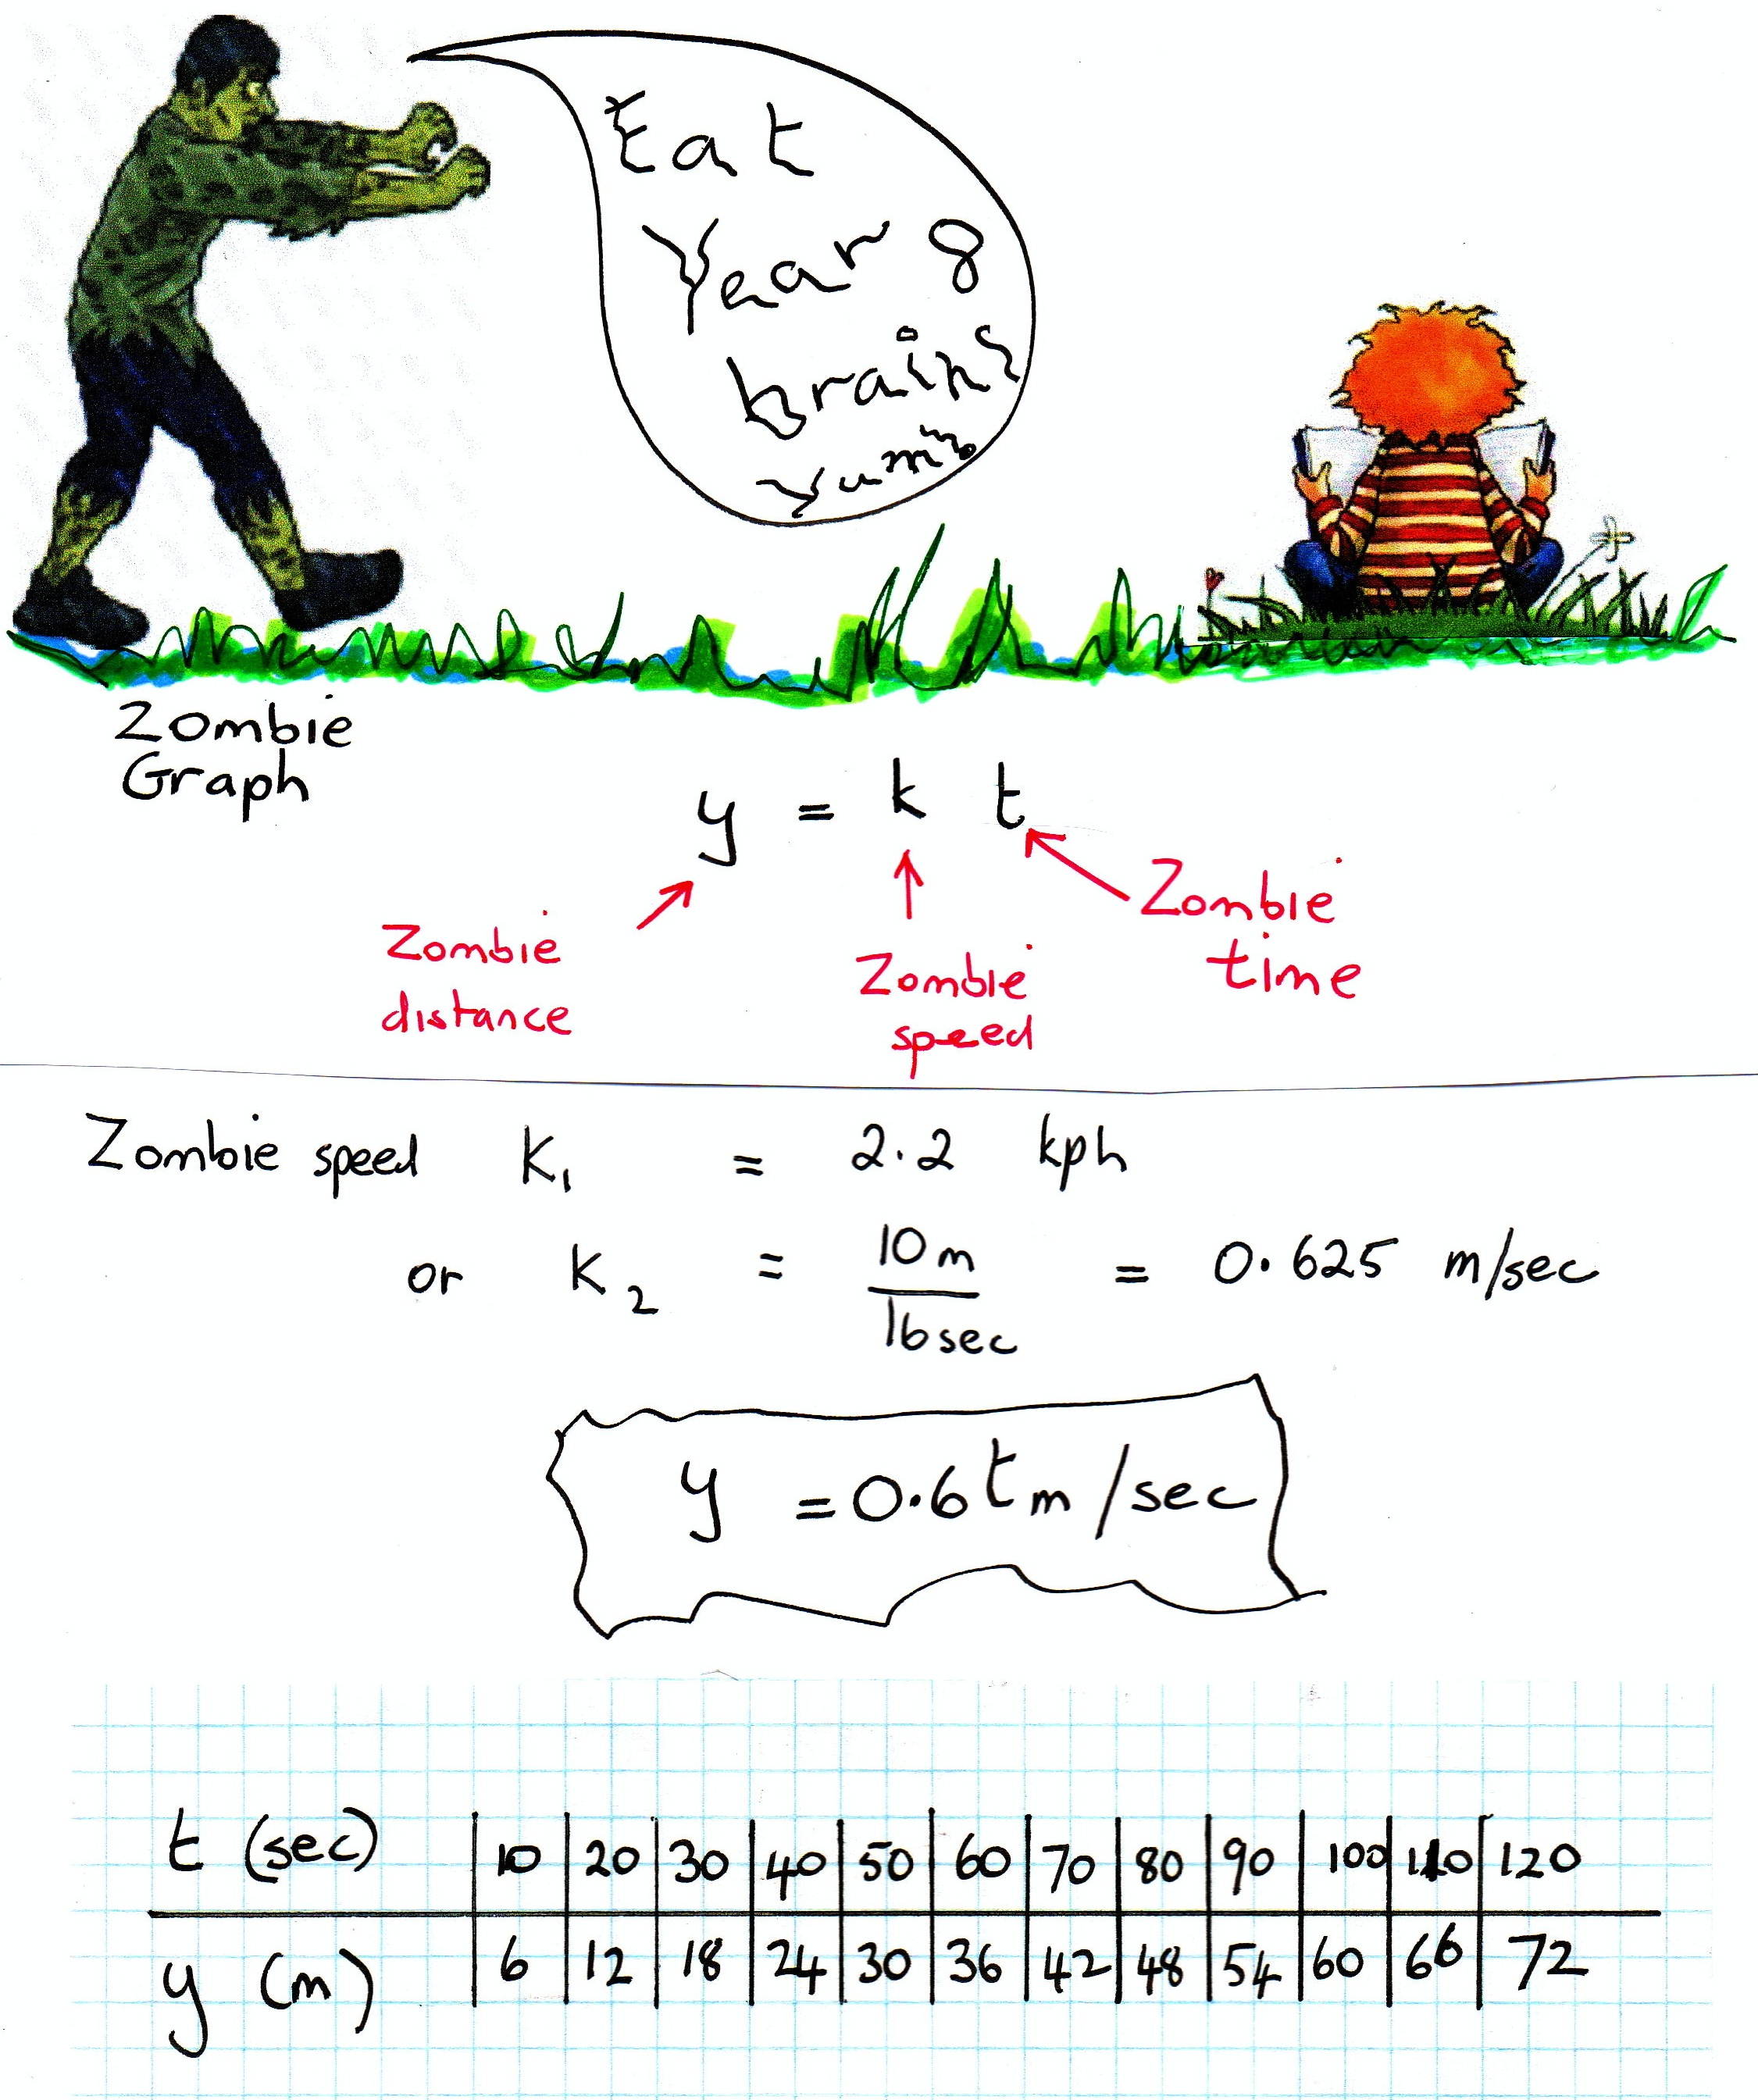 Funny Zombie Math